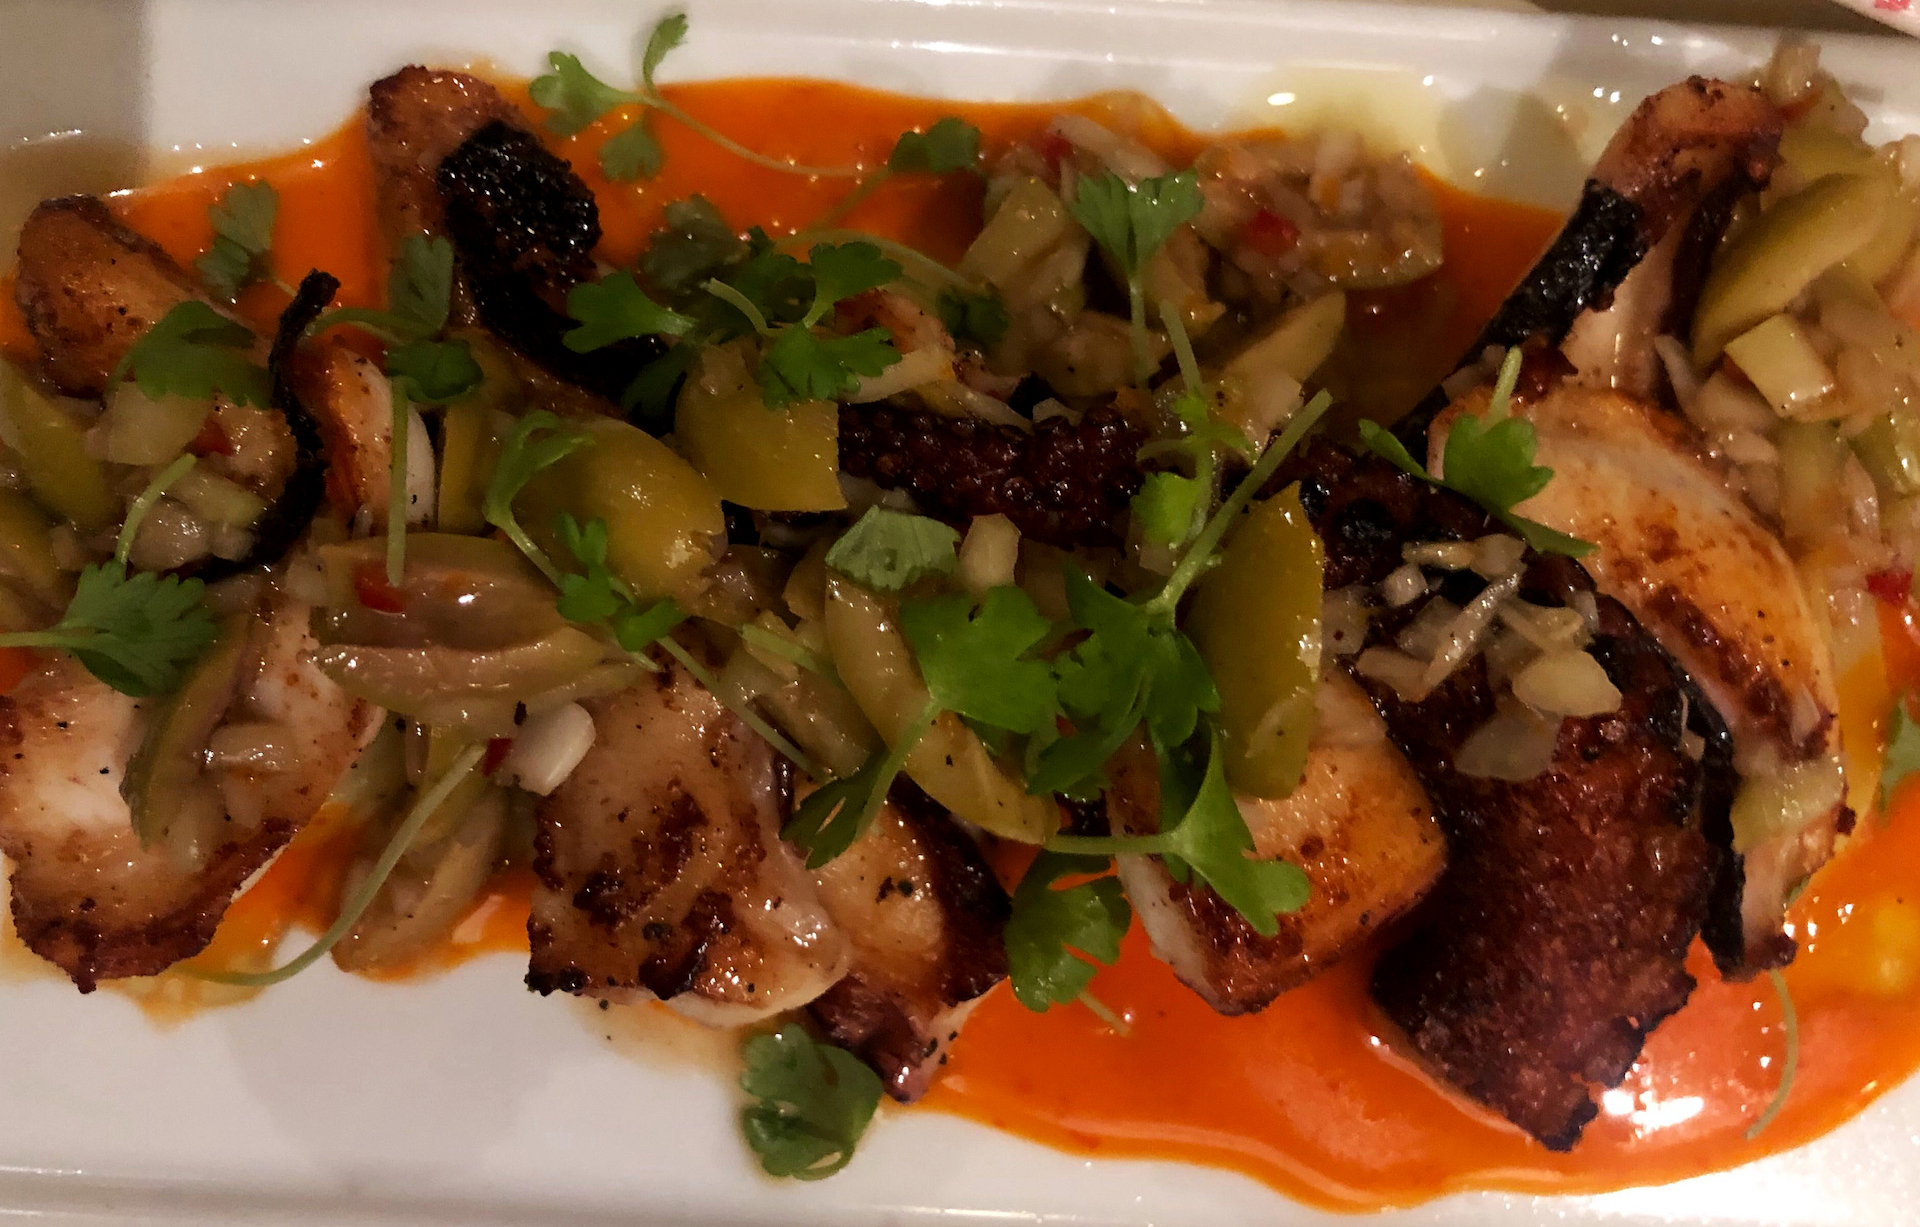 Octopus is a mainstay at Oakland restaurant Shakewell's Mediterranean inspired menu.